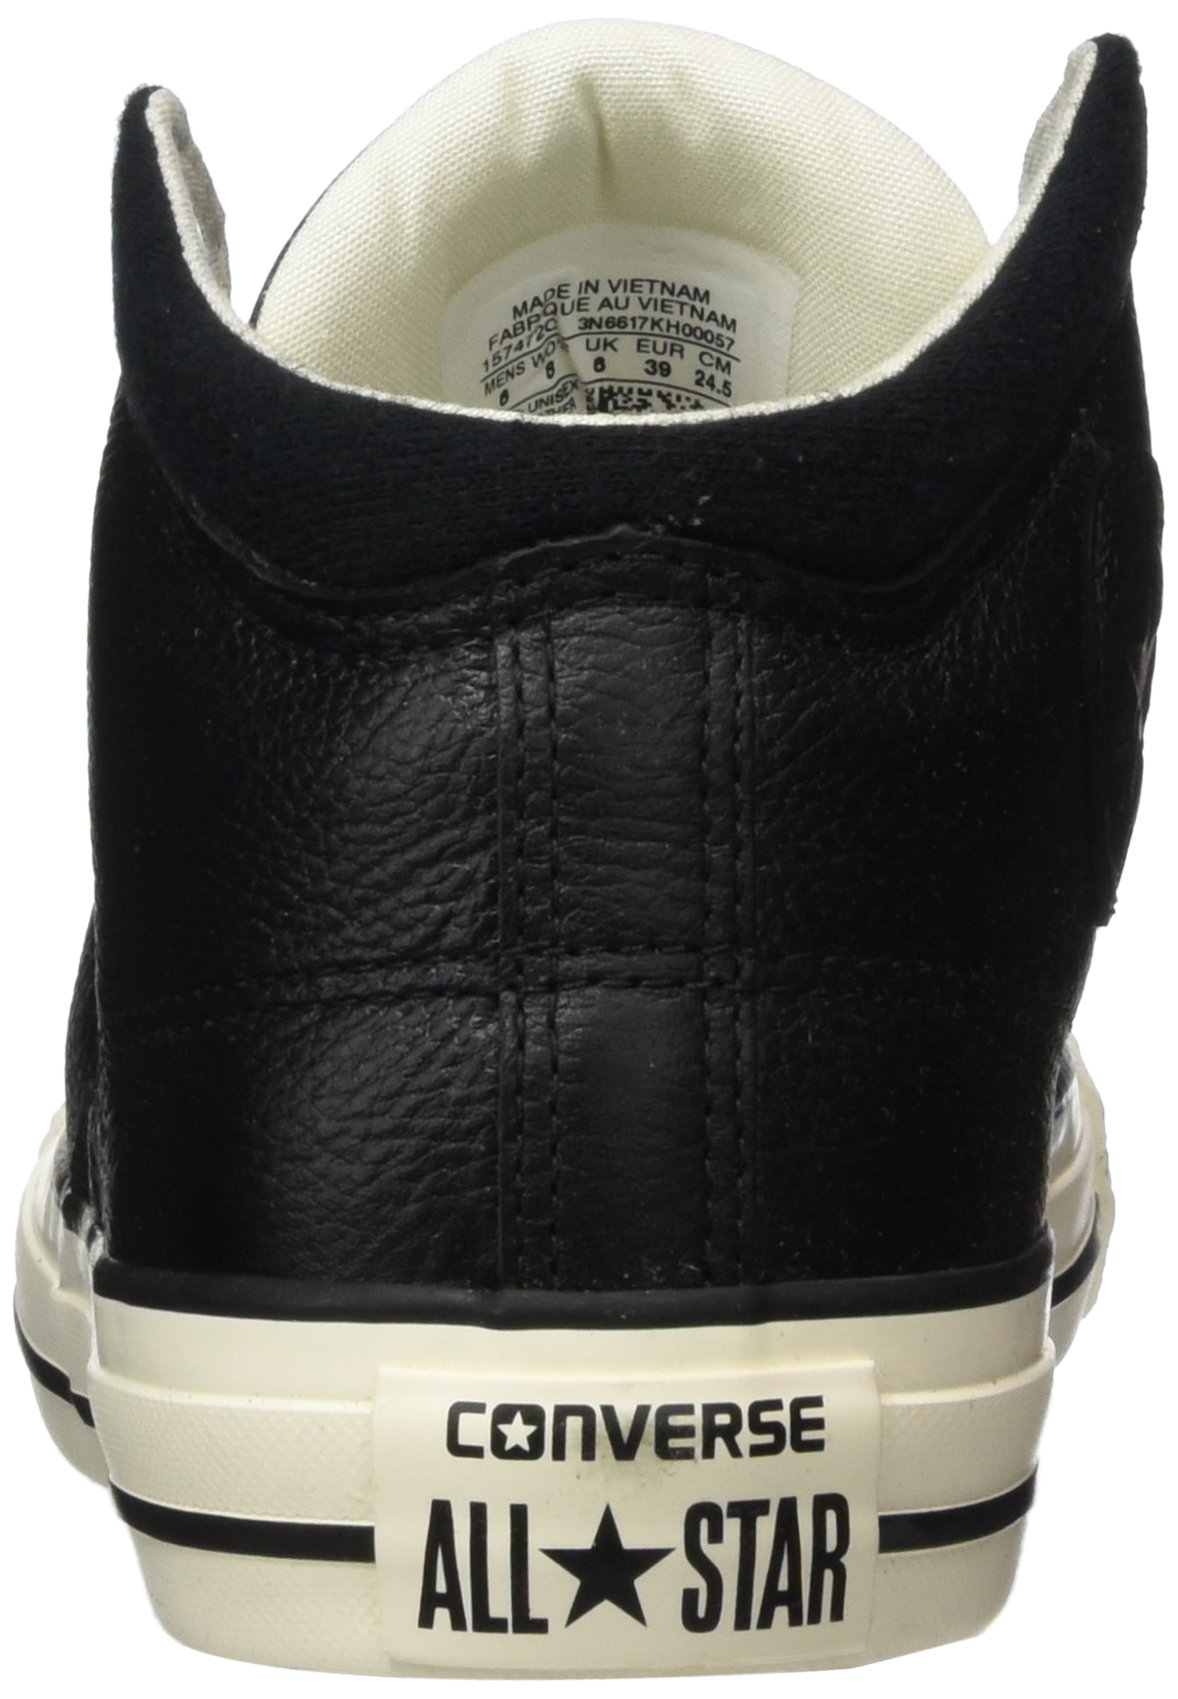 Converse Unisex Chuck Taylor All Star High Street Kurim Mid Sneaker Leather Black 10.5 D(M) US by Converse (Image #2)